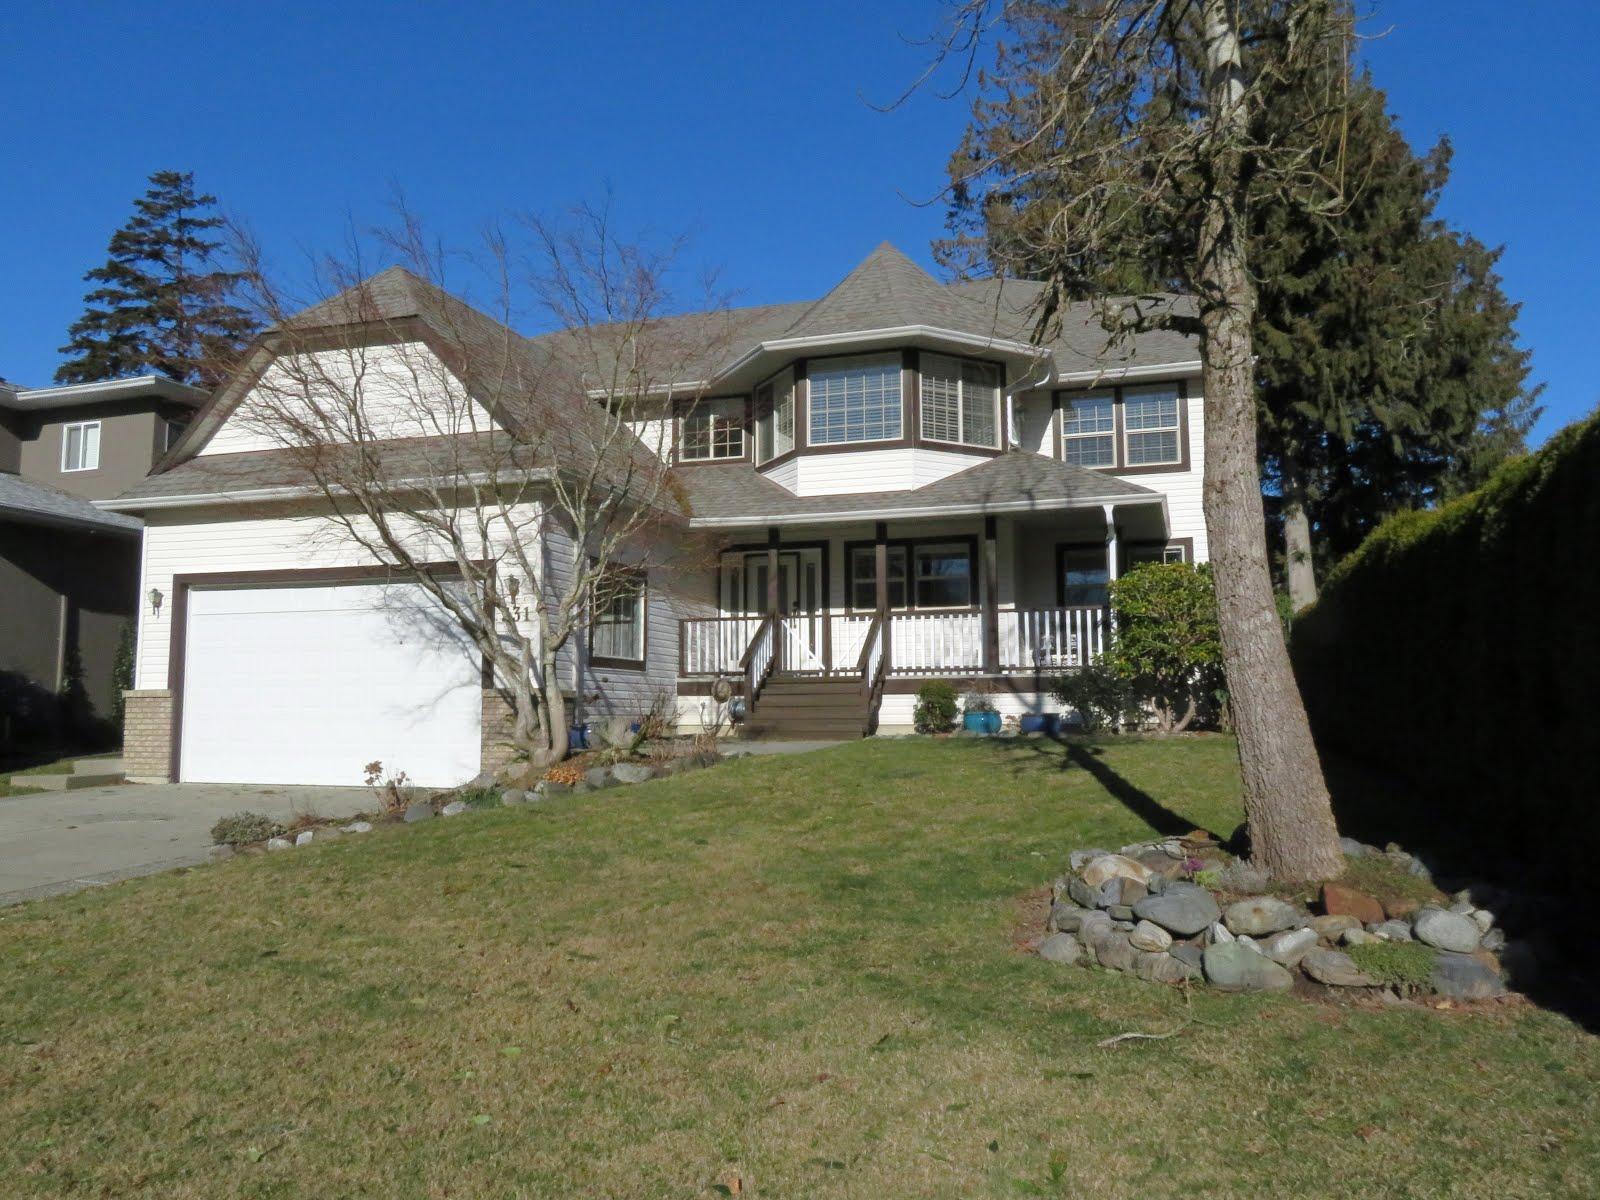 HARRISON HOT SPRINGS - Wonderful large family home with in-law suite.